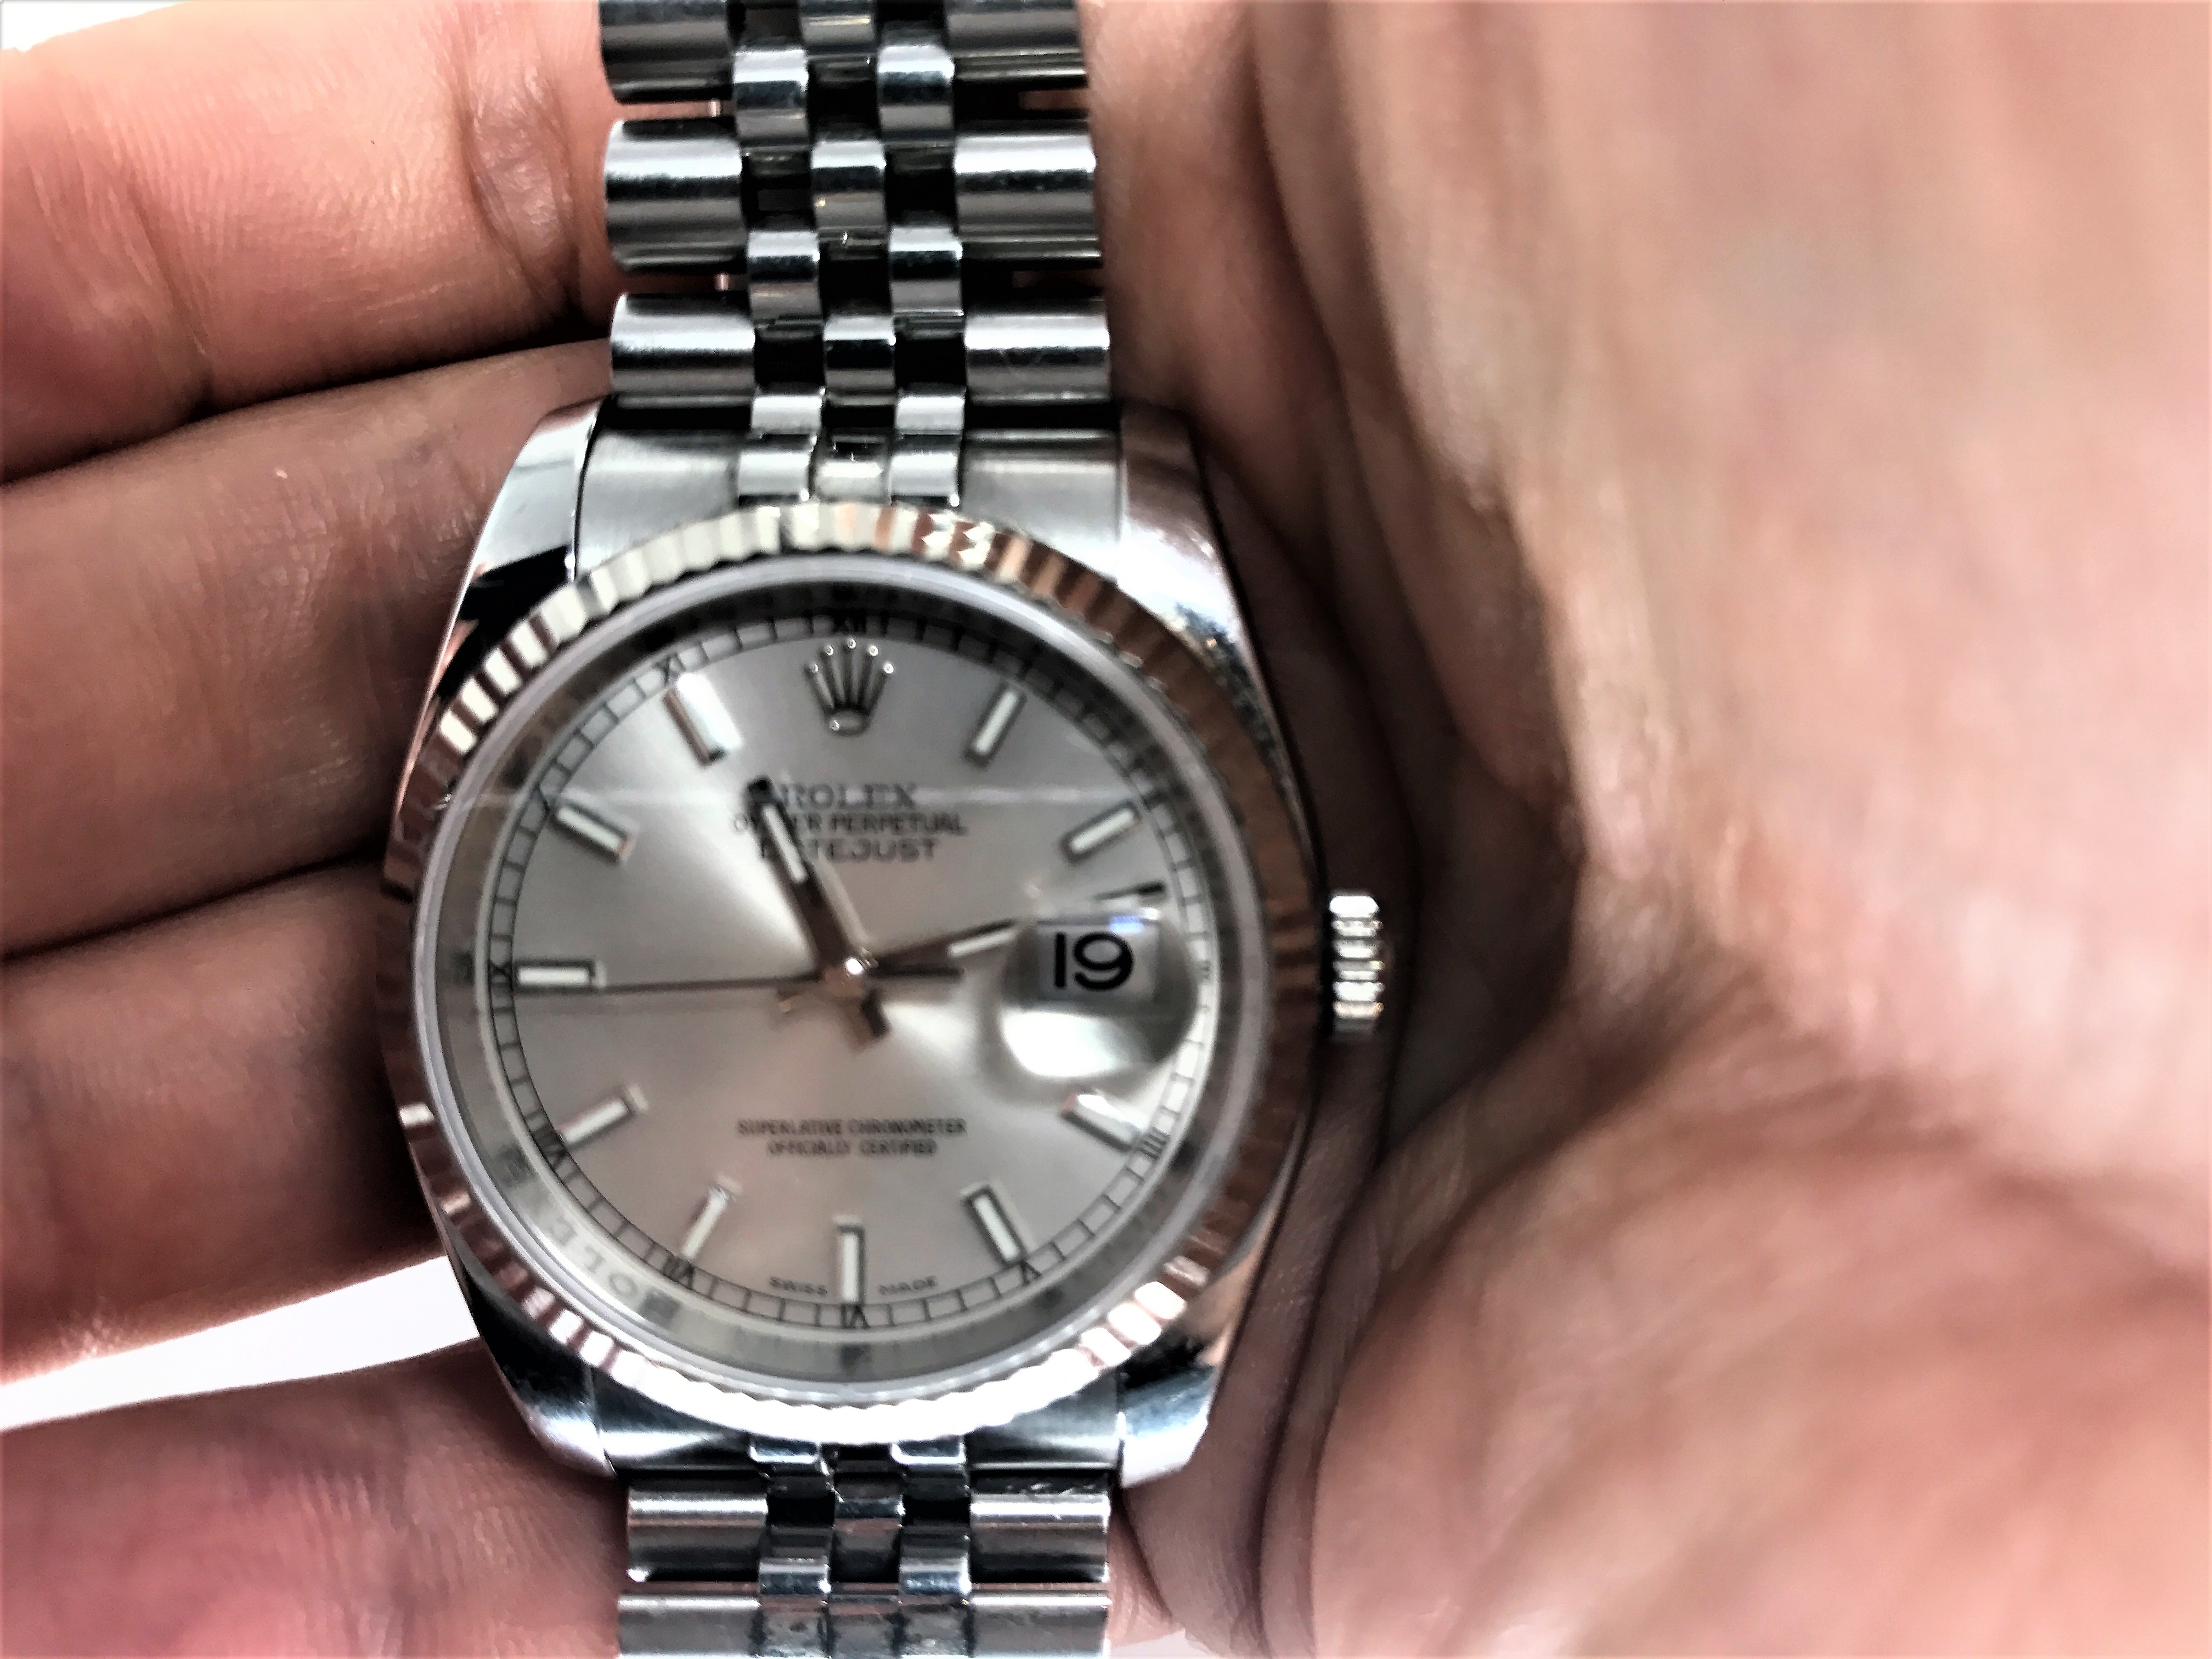 116234 datejust 36mm 2011 - Image 2 of 7